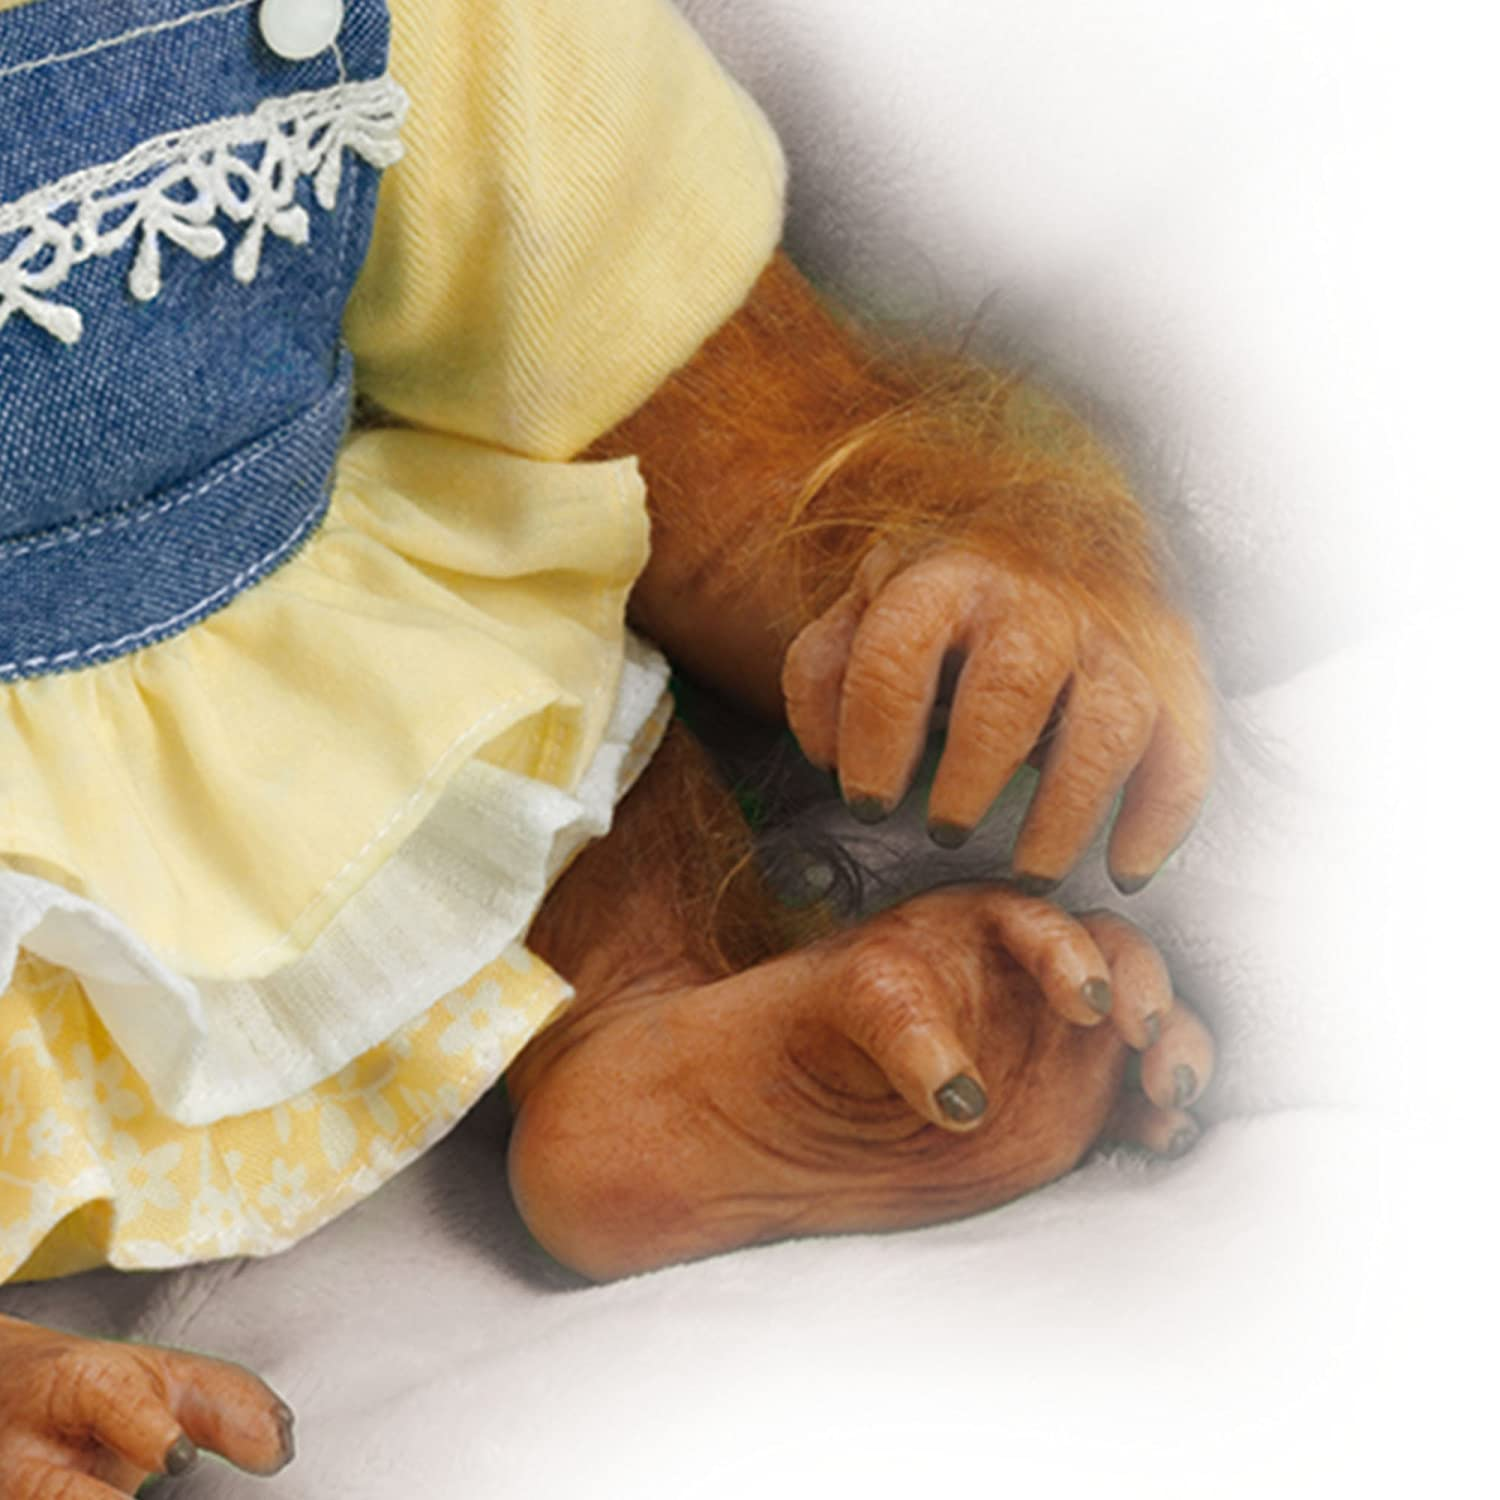 The Ashton-Drake Galleries Darling Daisy Monkey Reborn Baby Girl Doll A Cute Realistic Real Touch Baby Monkey Lifelike Doll